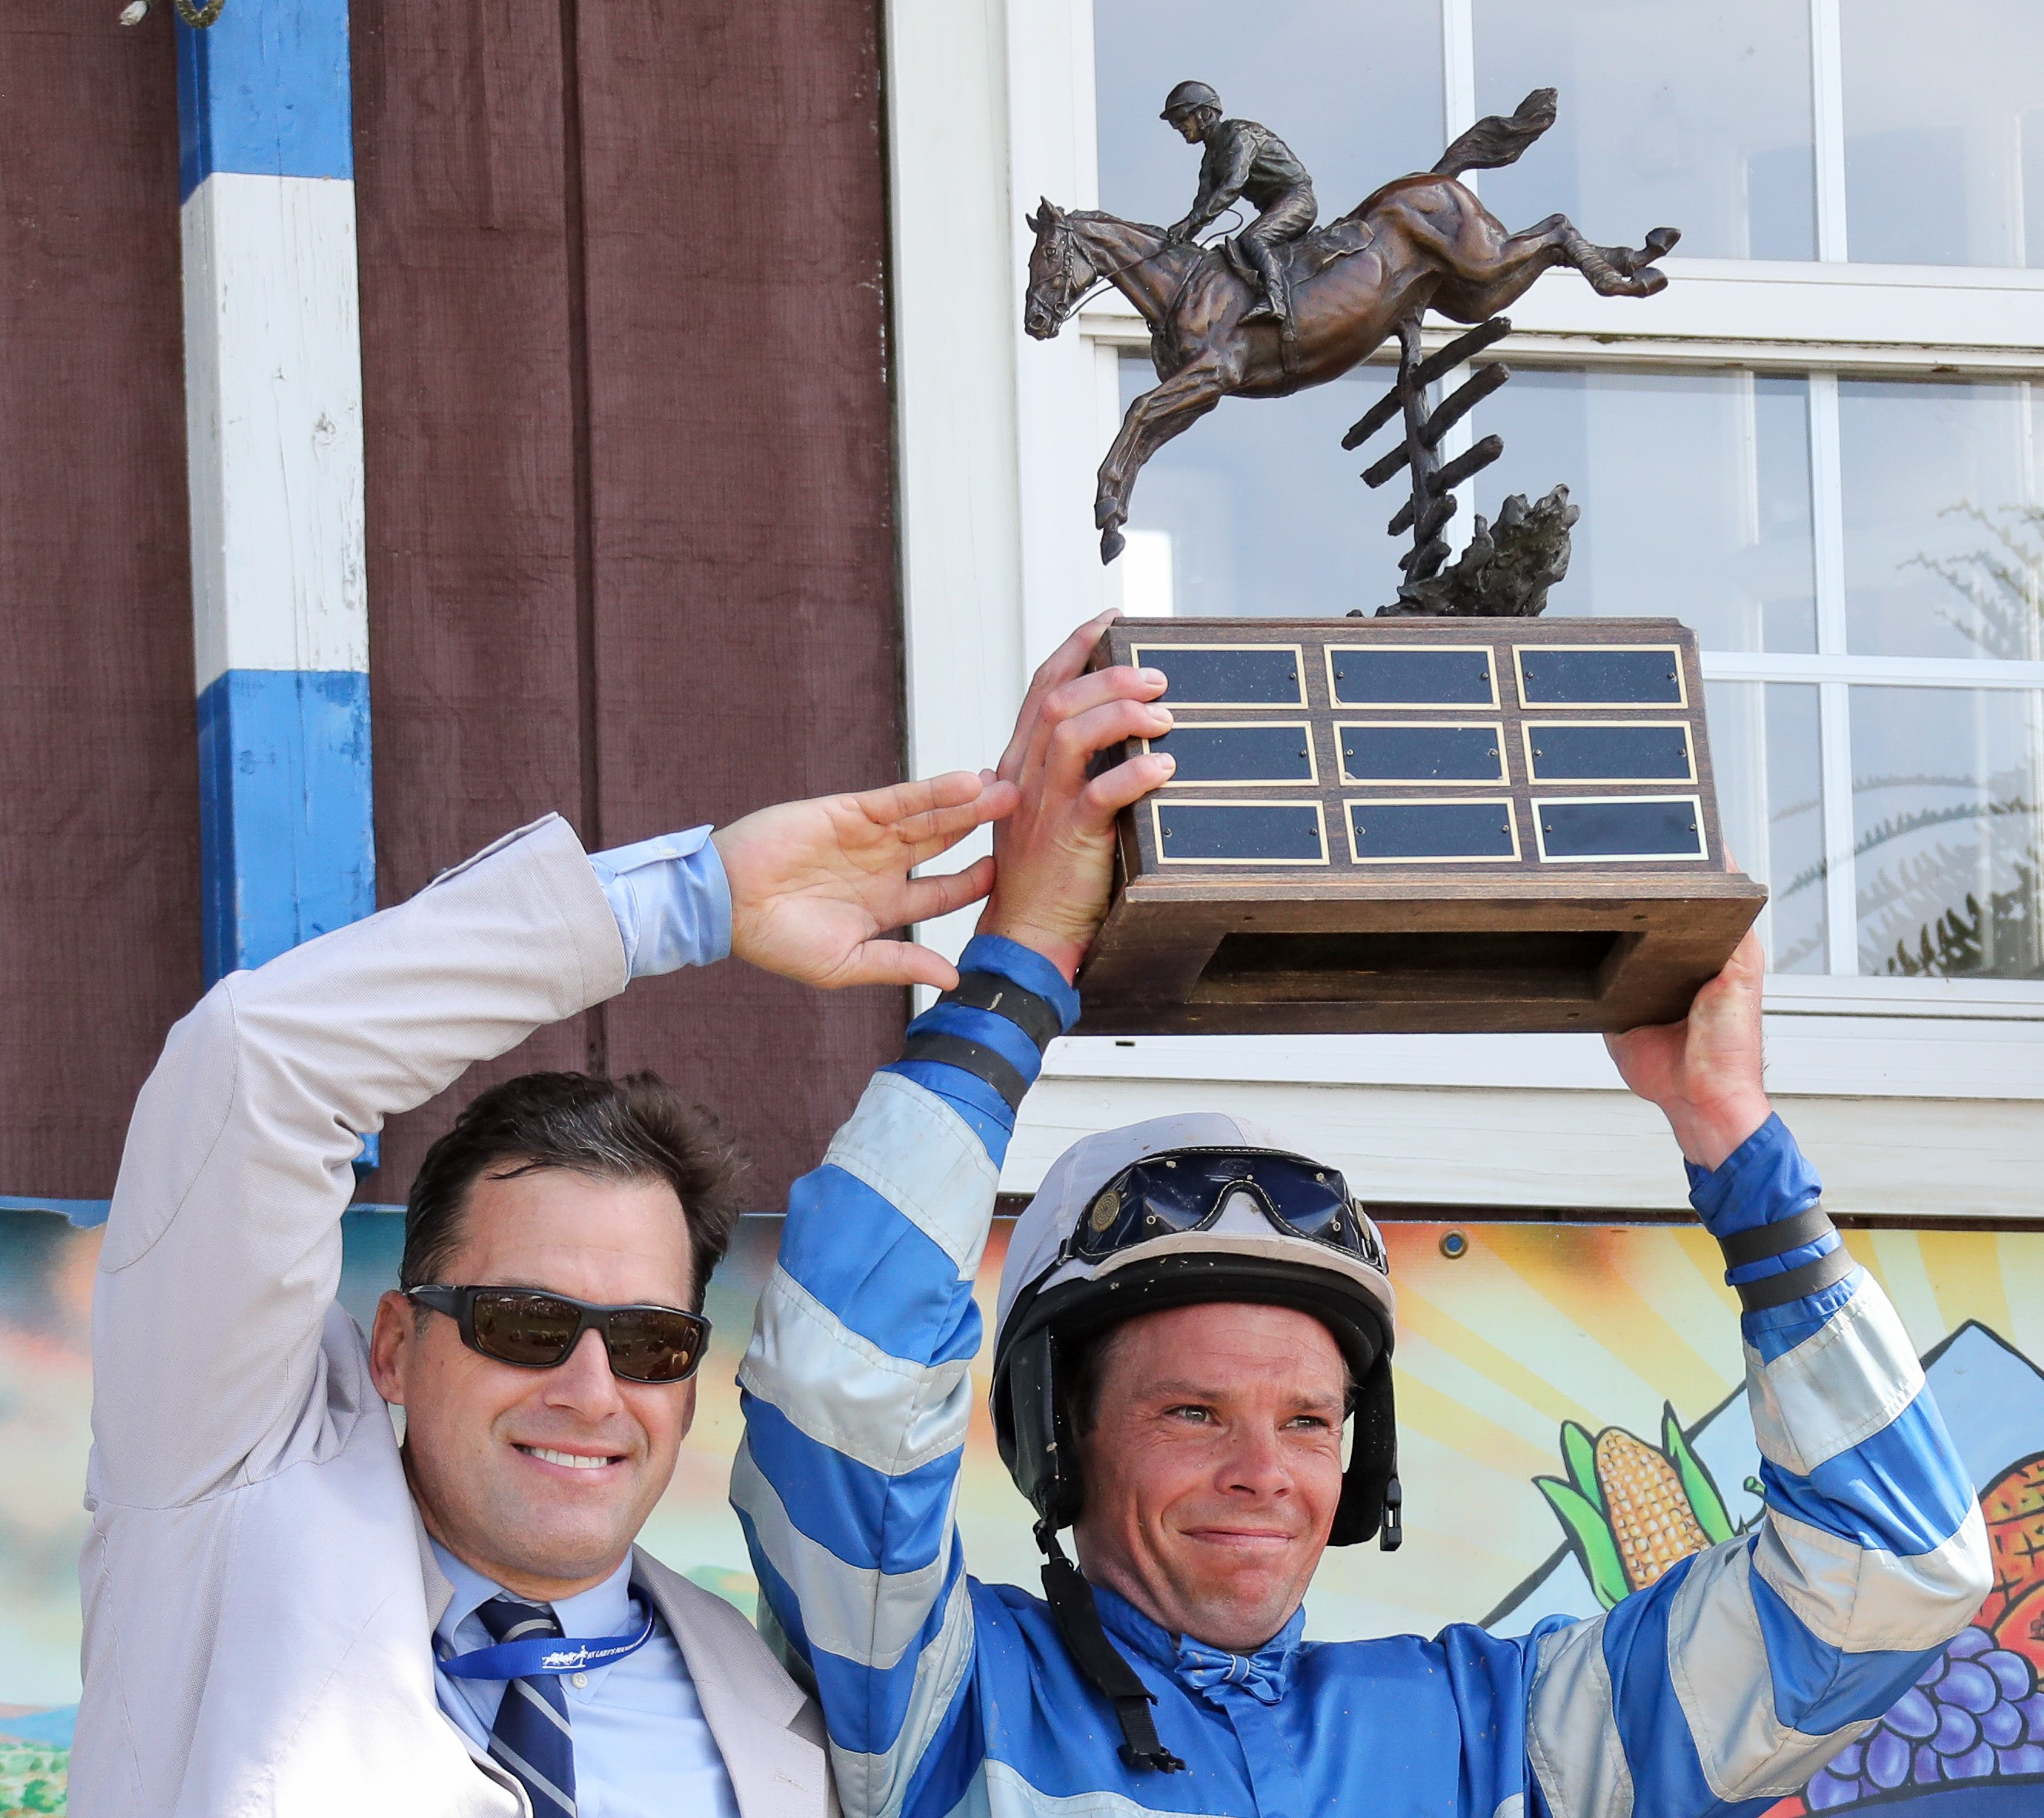 2019 Manor Racer winning trainer, Todd McKenna and Jockey, Mark Beecher